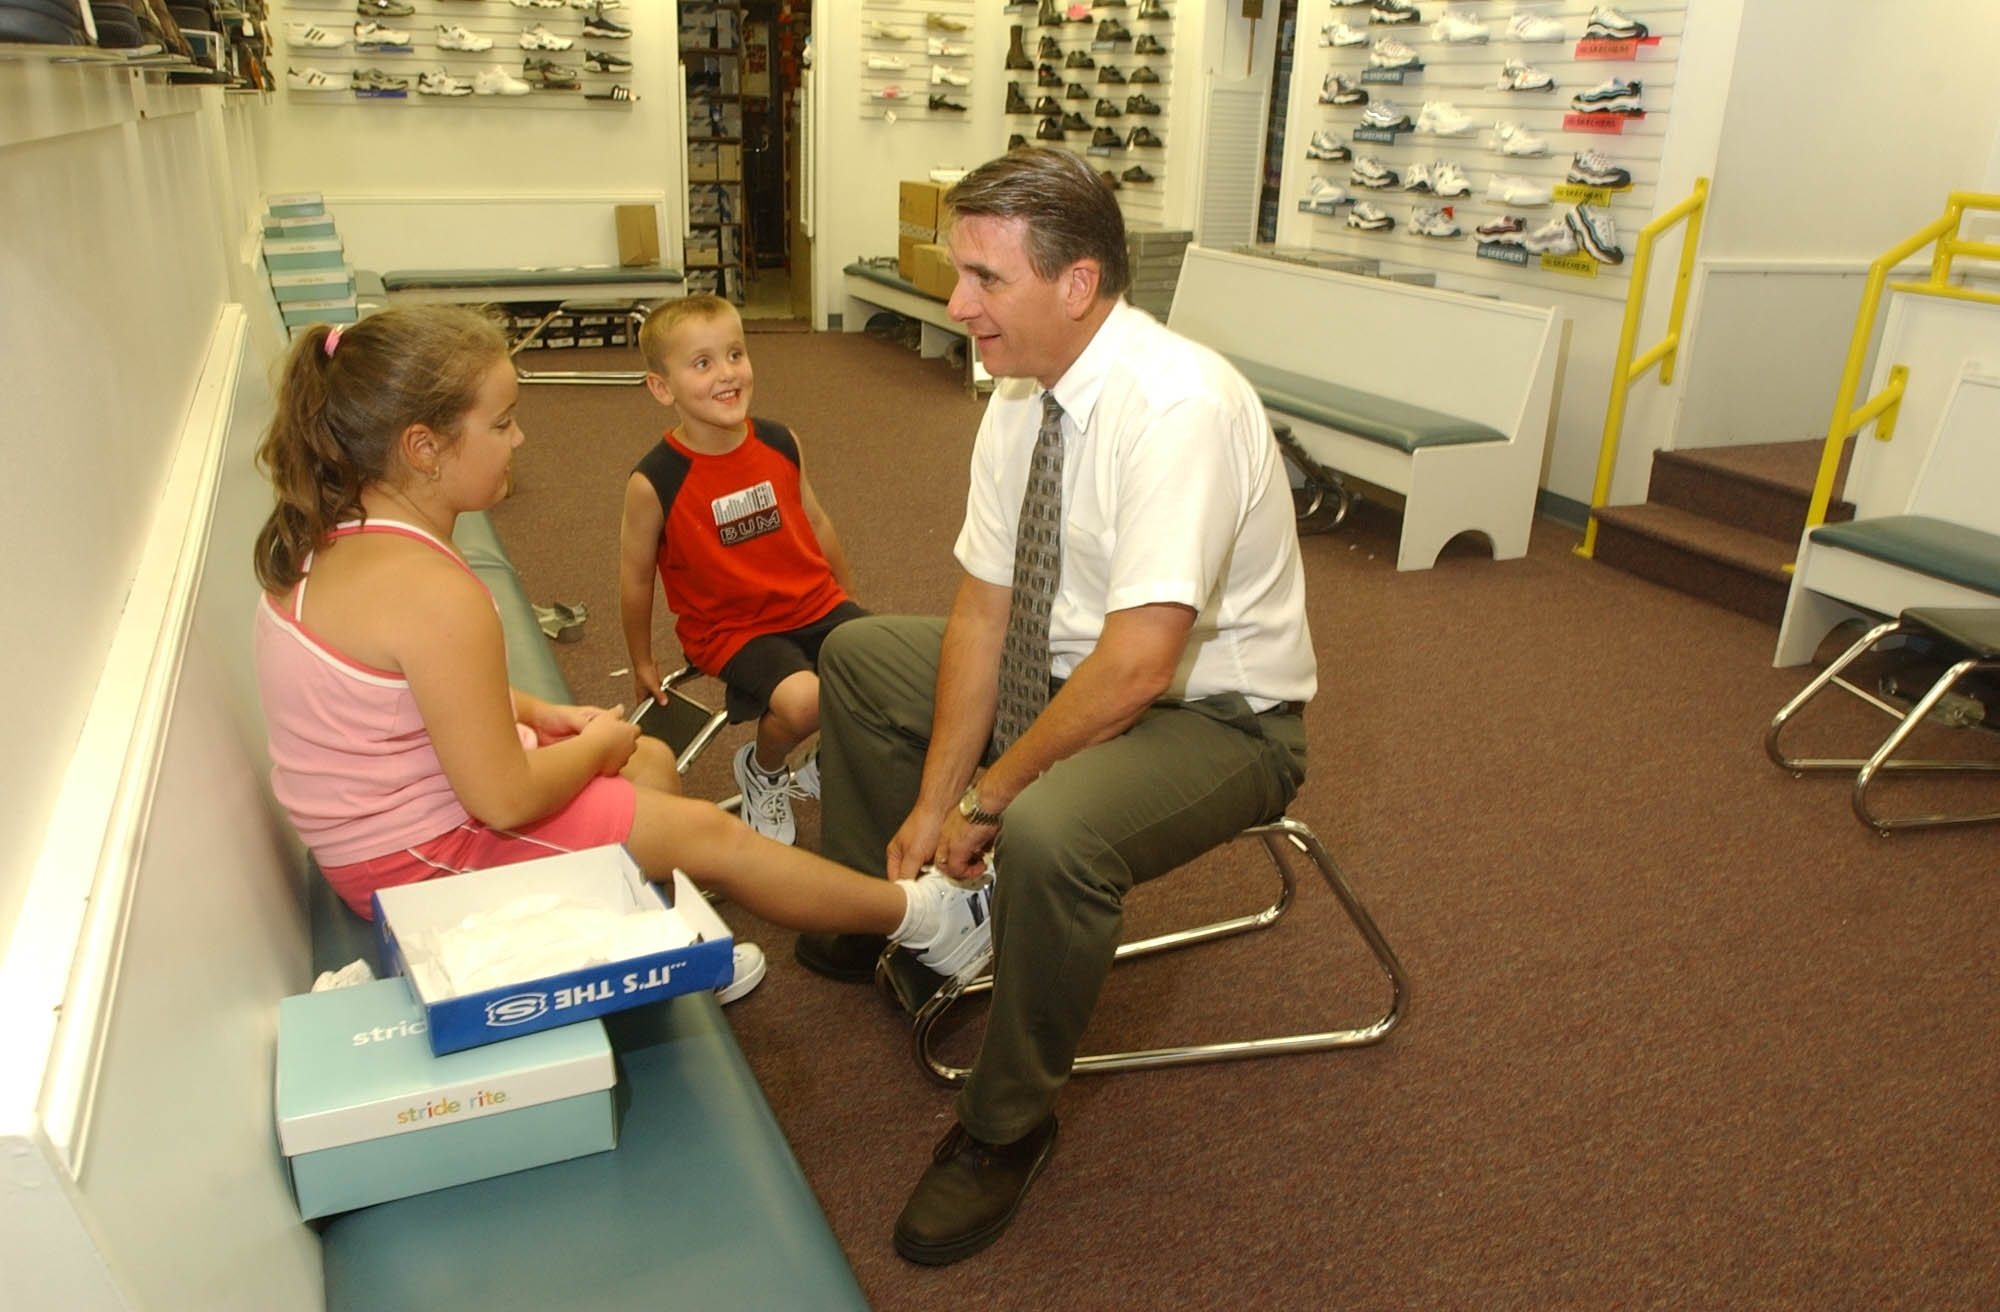 Boulevard Mall Bootery co-owner Mark Slayton helps customers Alexa and Tyler Eldridge at the shop in August, 2013. The longstanding children's shoe store announced that it is closing. (Buffalo News file photo)